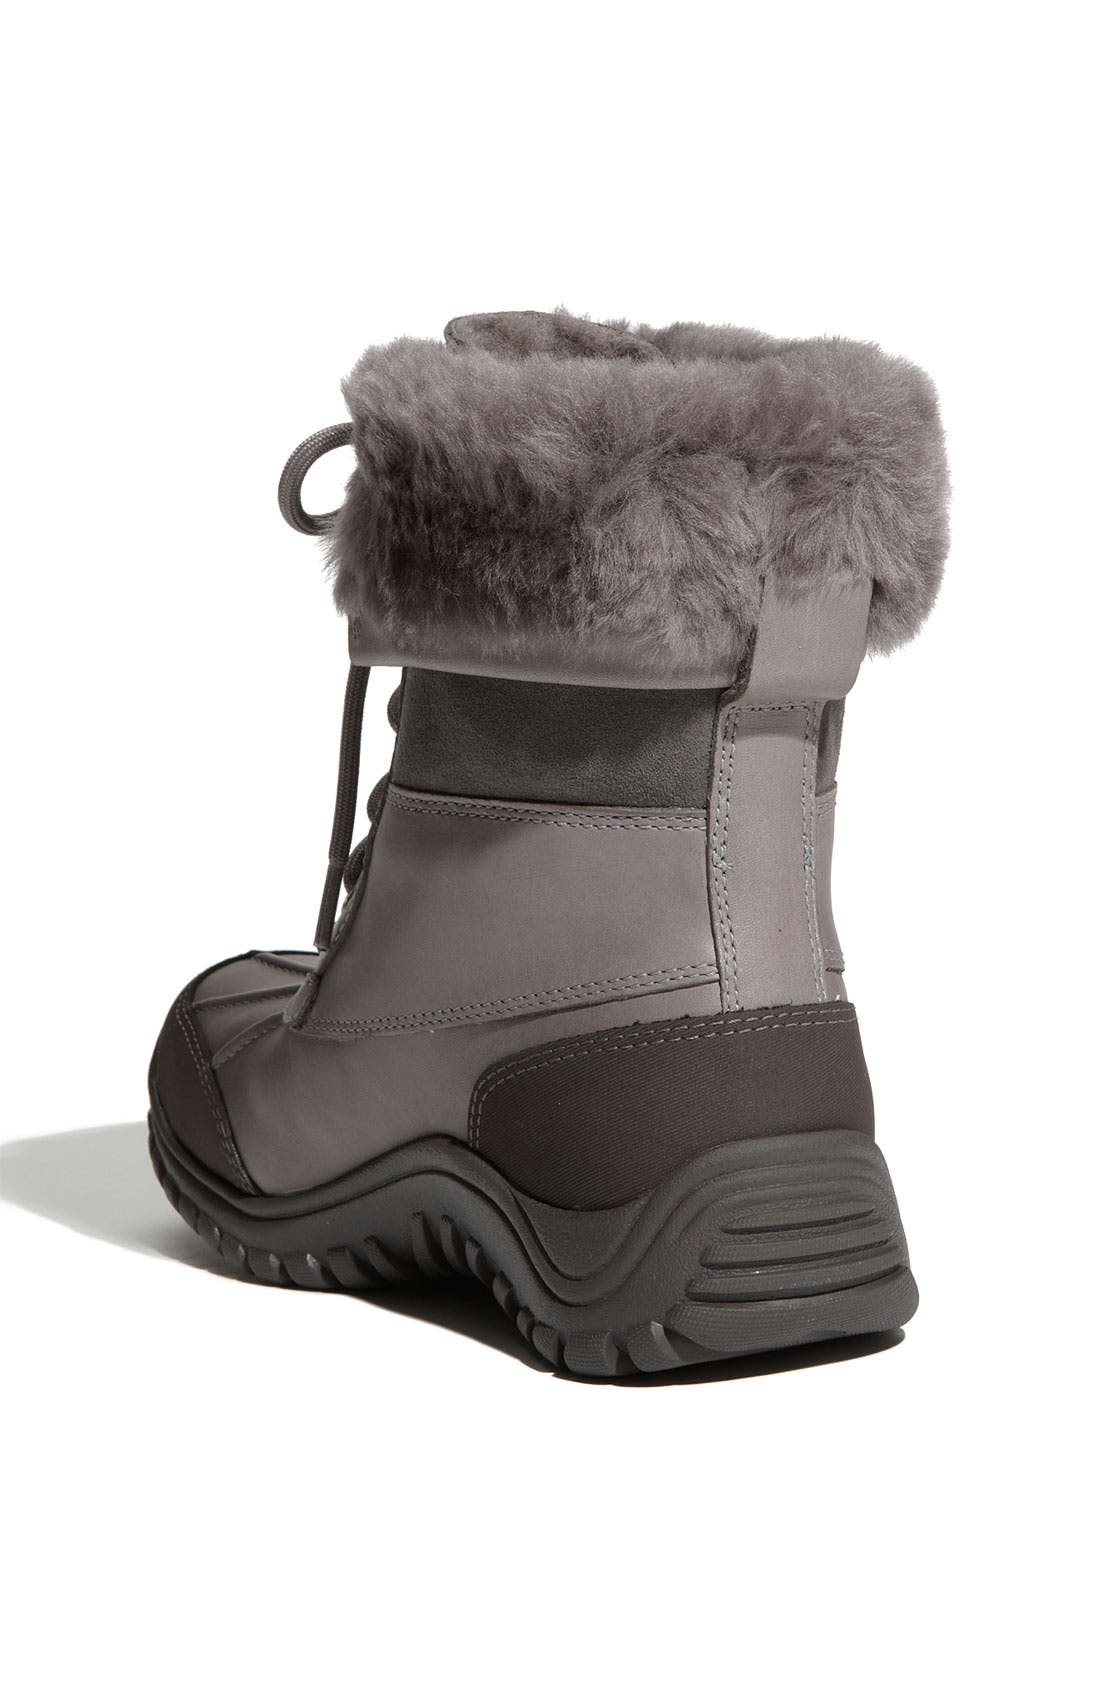 Adirondack II Waterproof Boot,                             Alternate thumbnail 41, color,